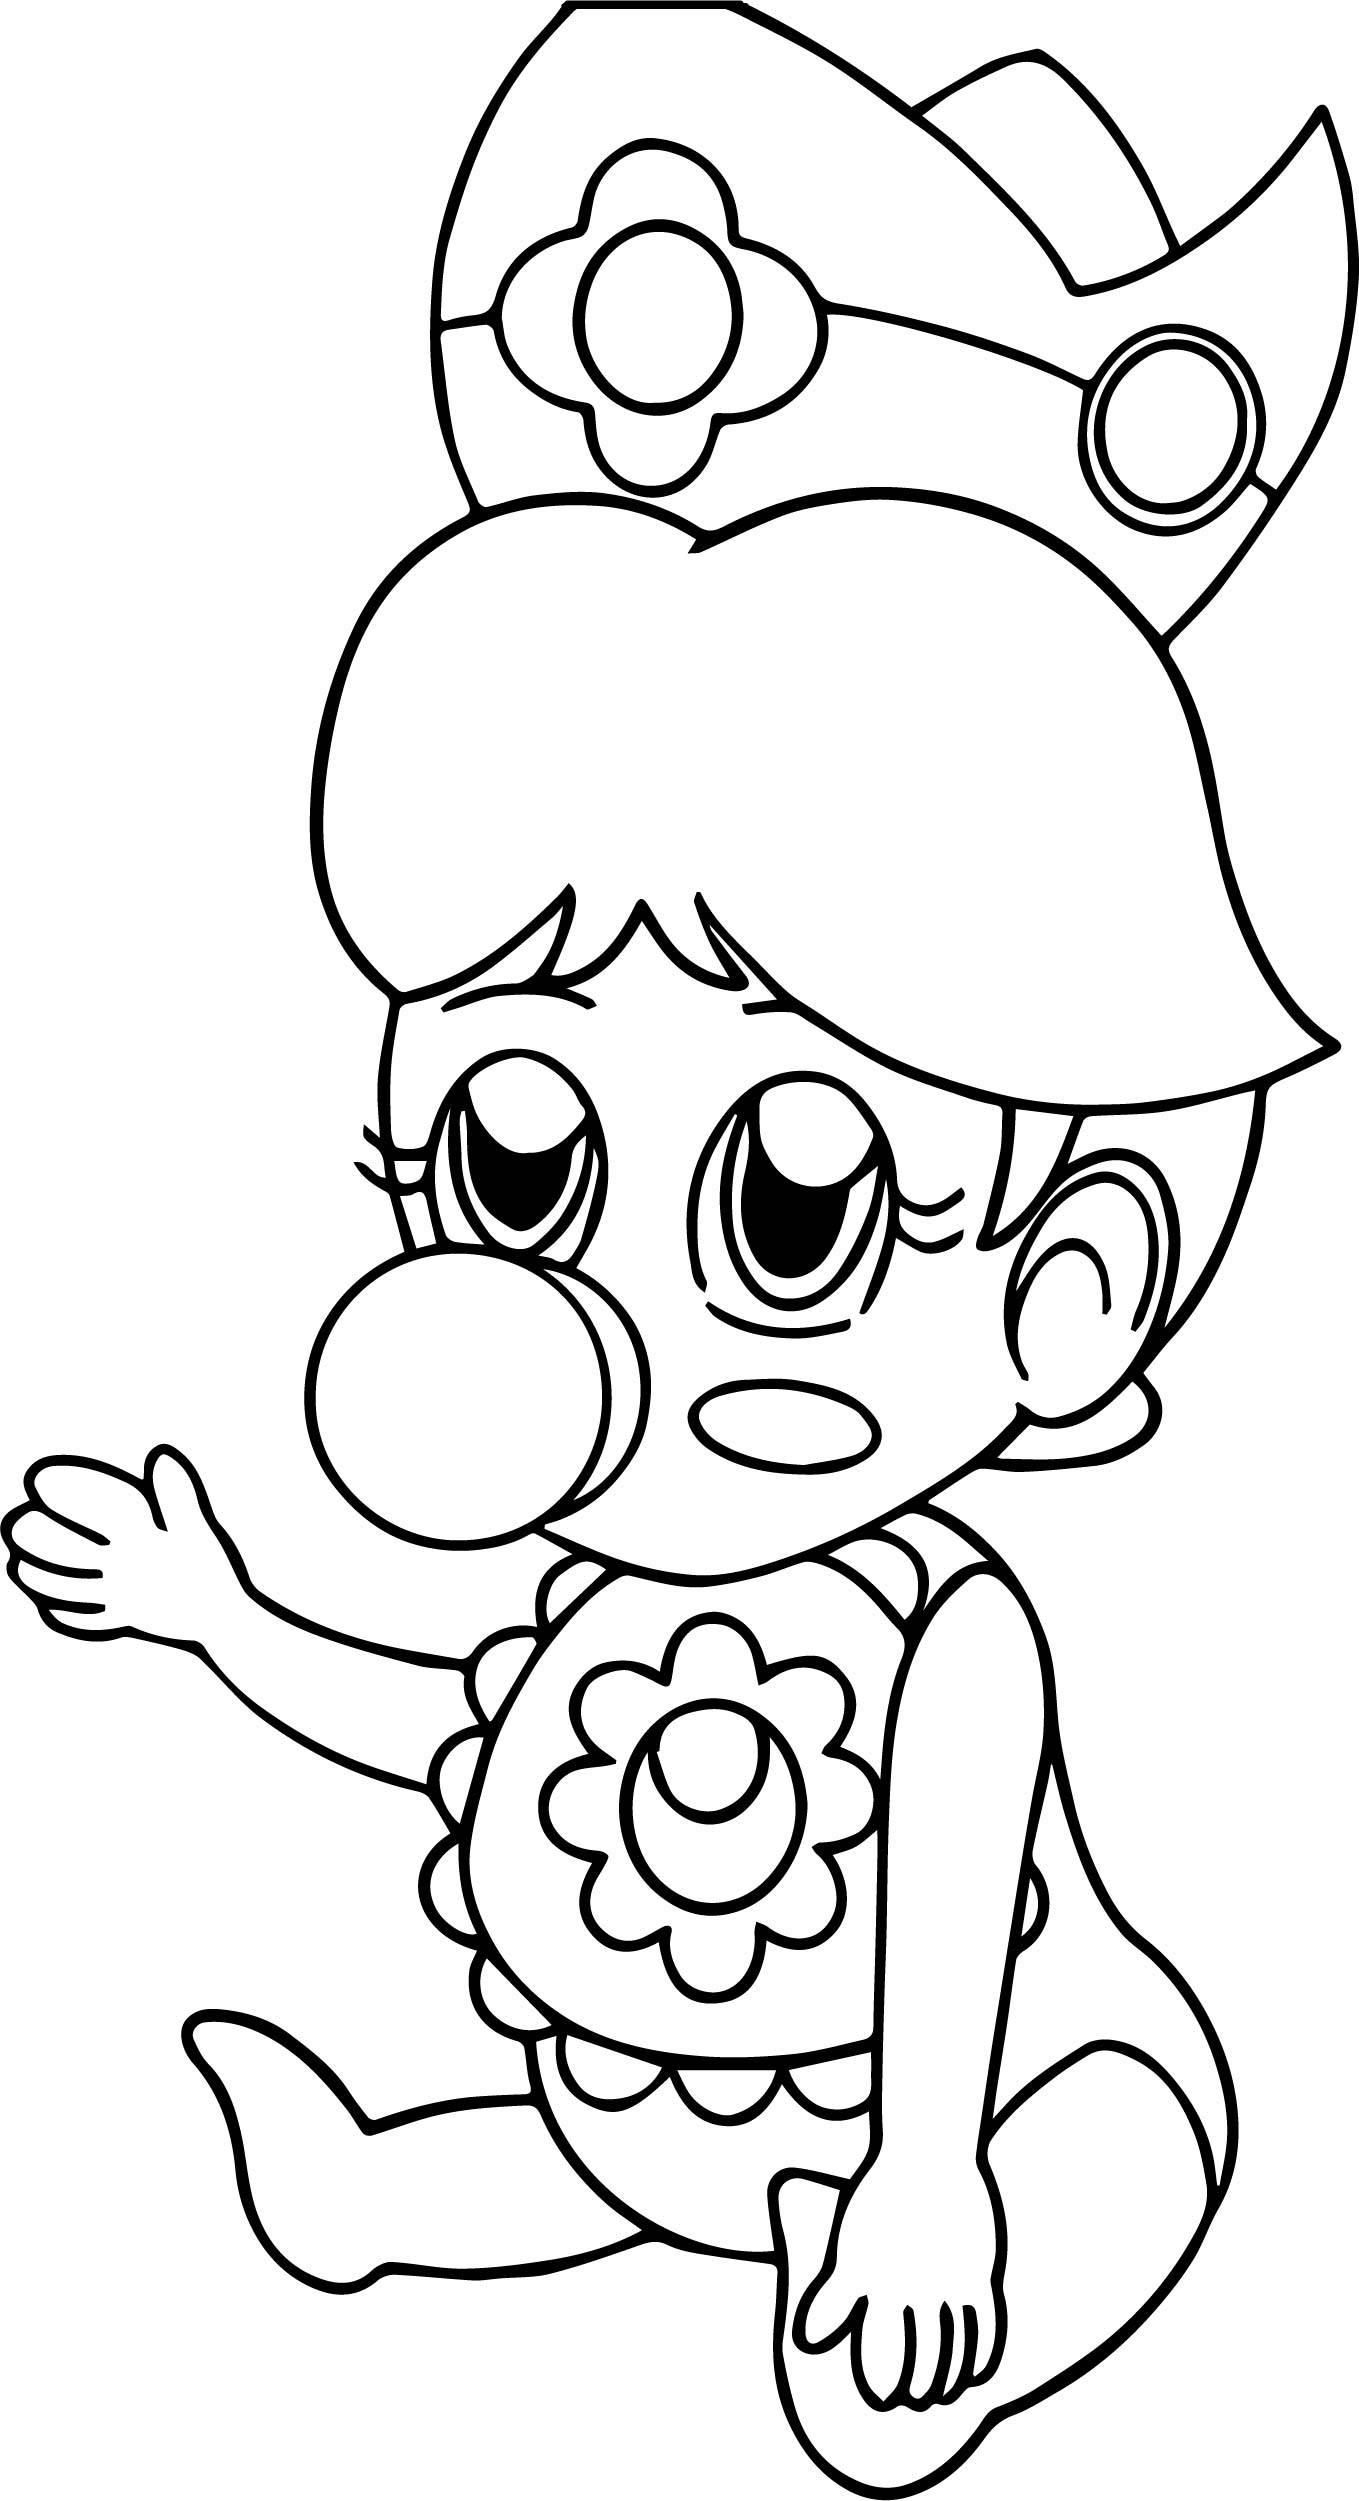 Fine daisy coloring page for Daisy coloring page